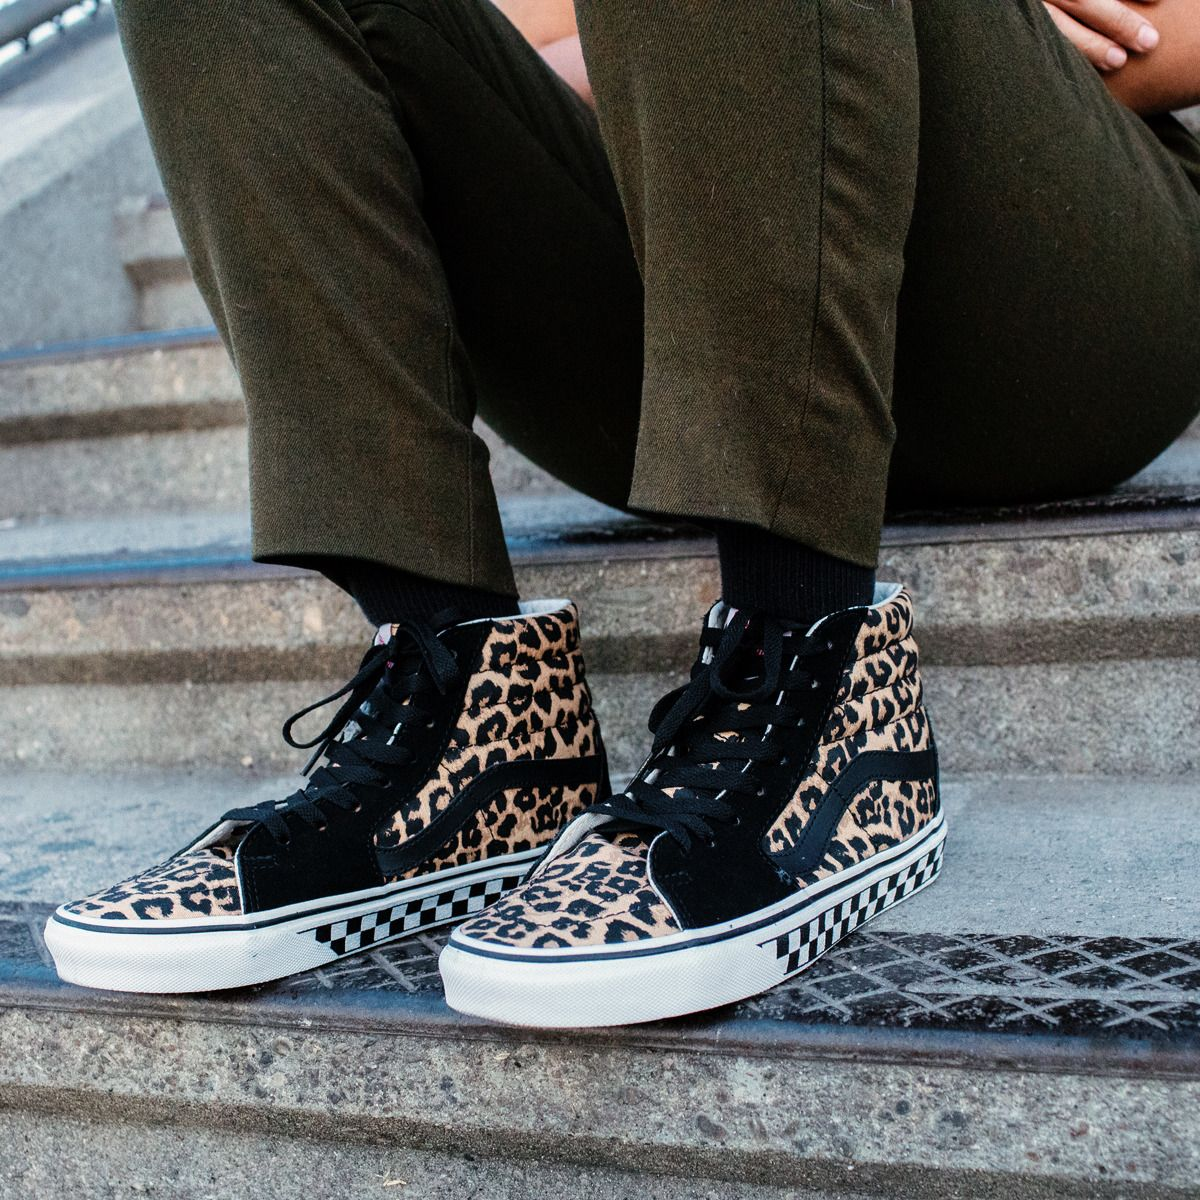 0ce13f9cd486 Take a walk on the wild side. Design your own pair of Vans with new prints.